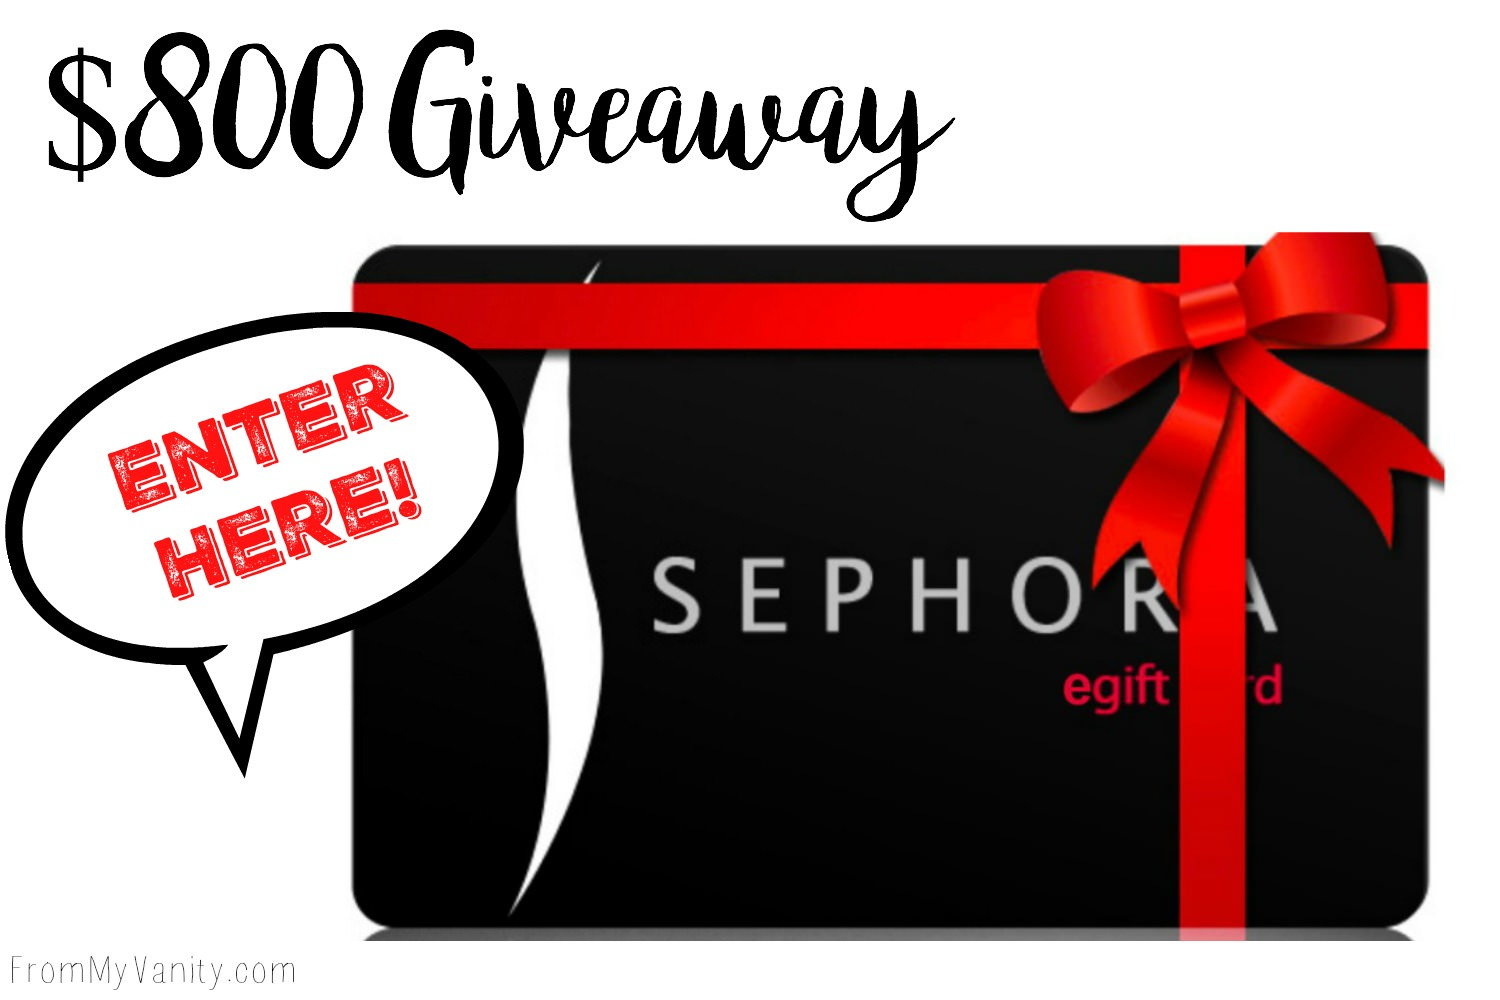 photograph about Sephora Printable Gift Card known as $800 Sephora Giftcard Giveaway! - Versus My Self-importance